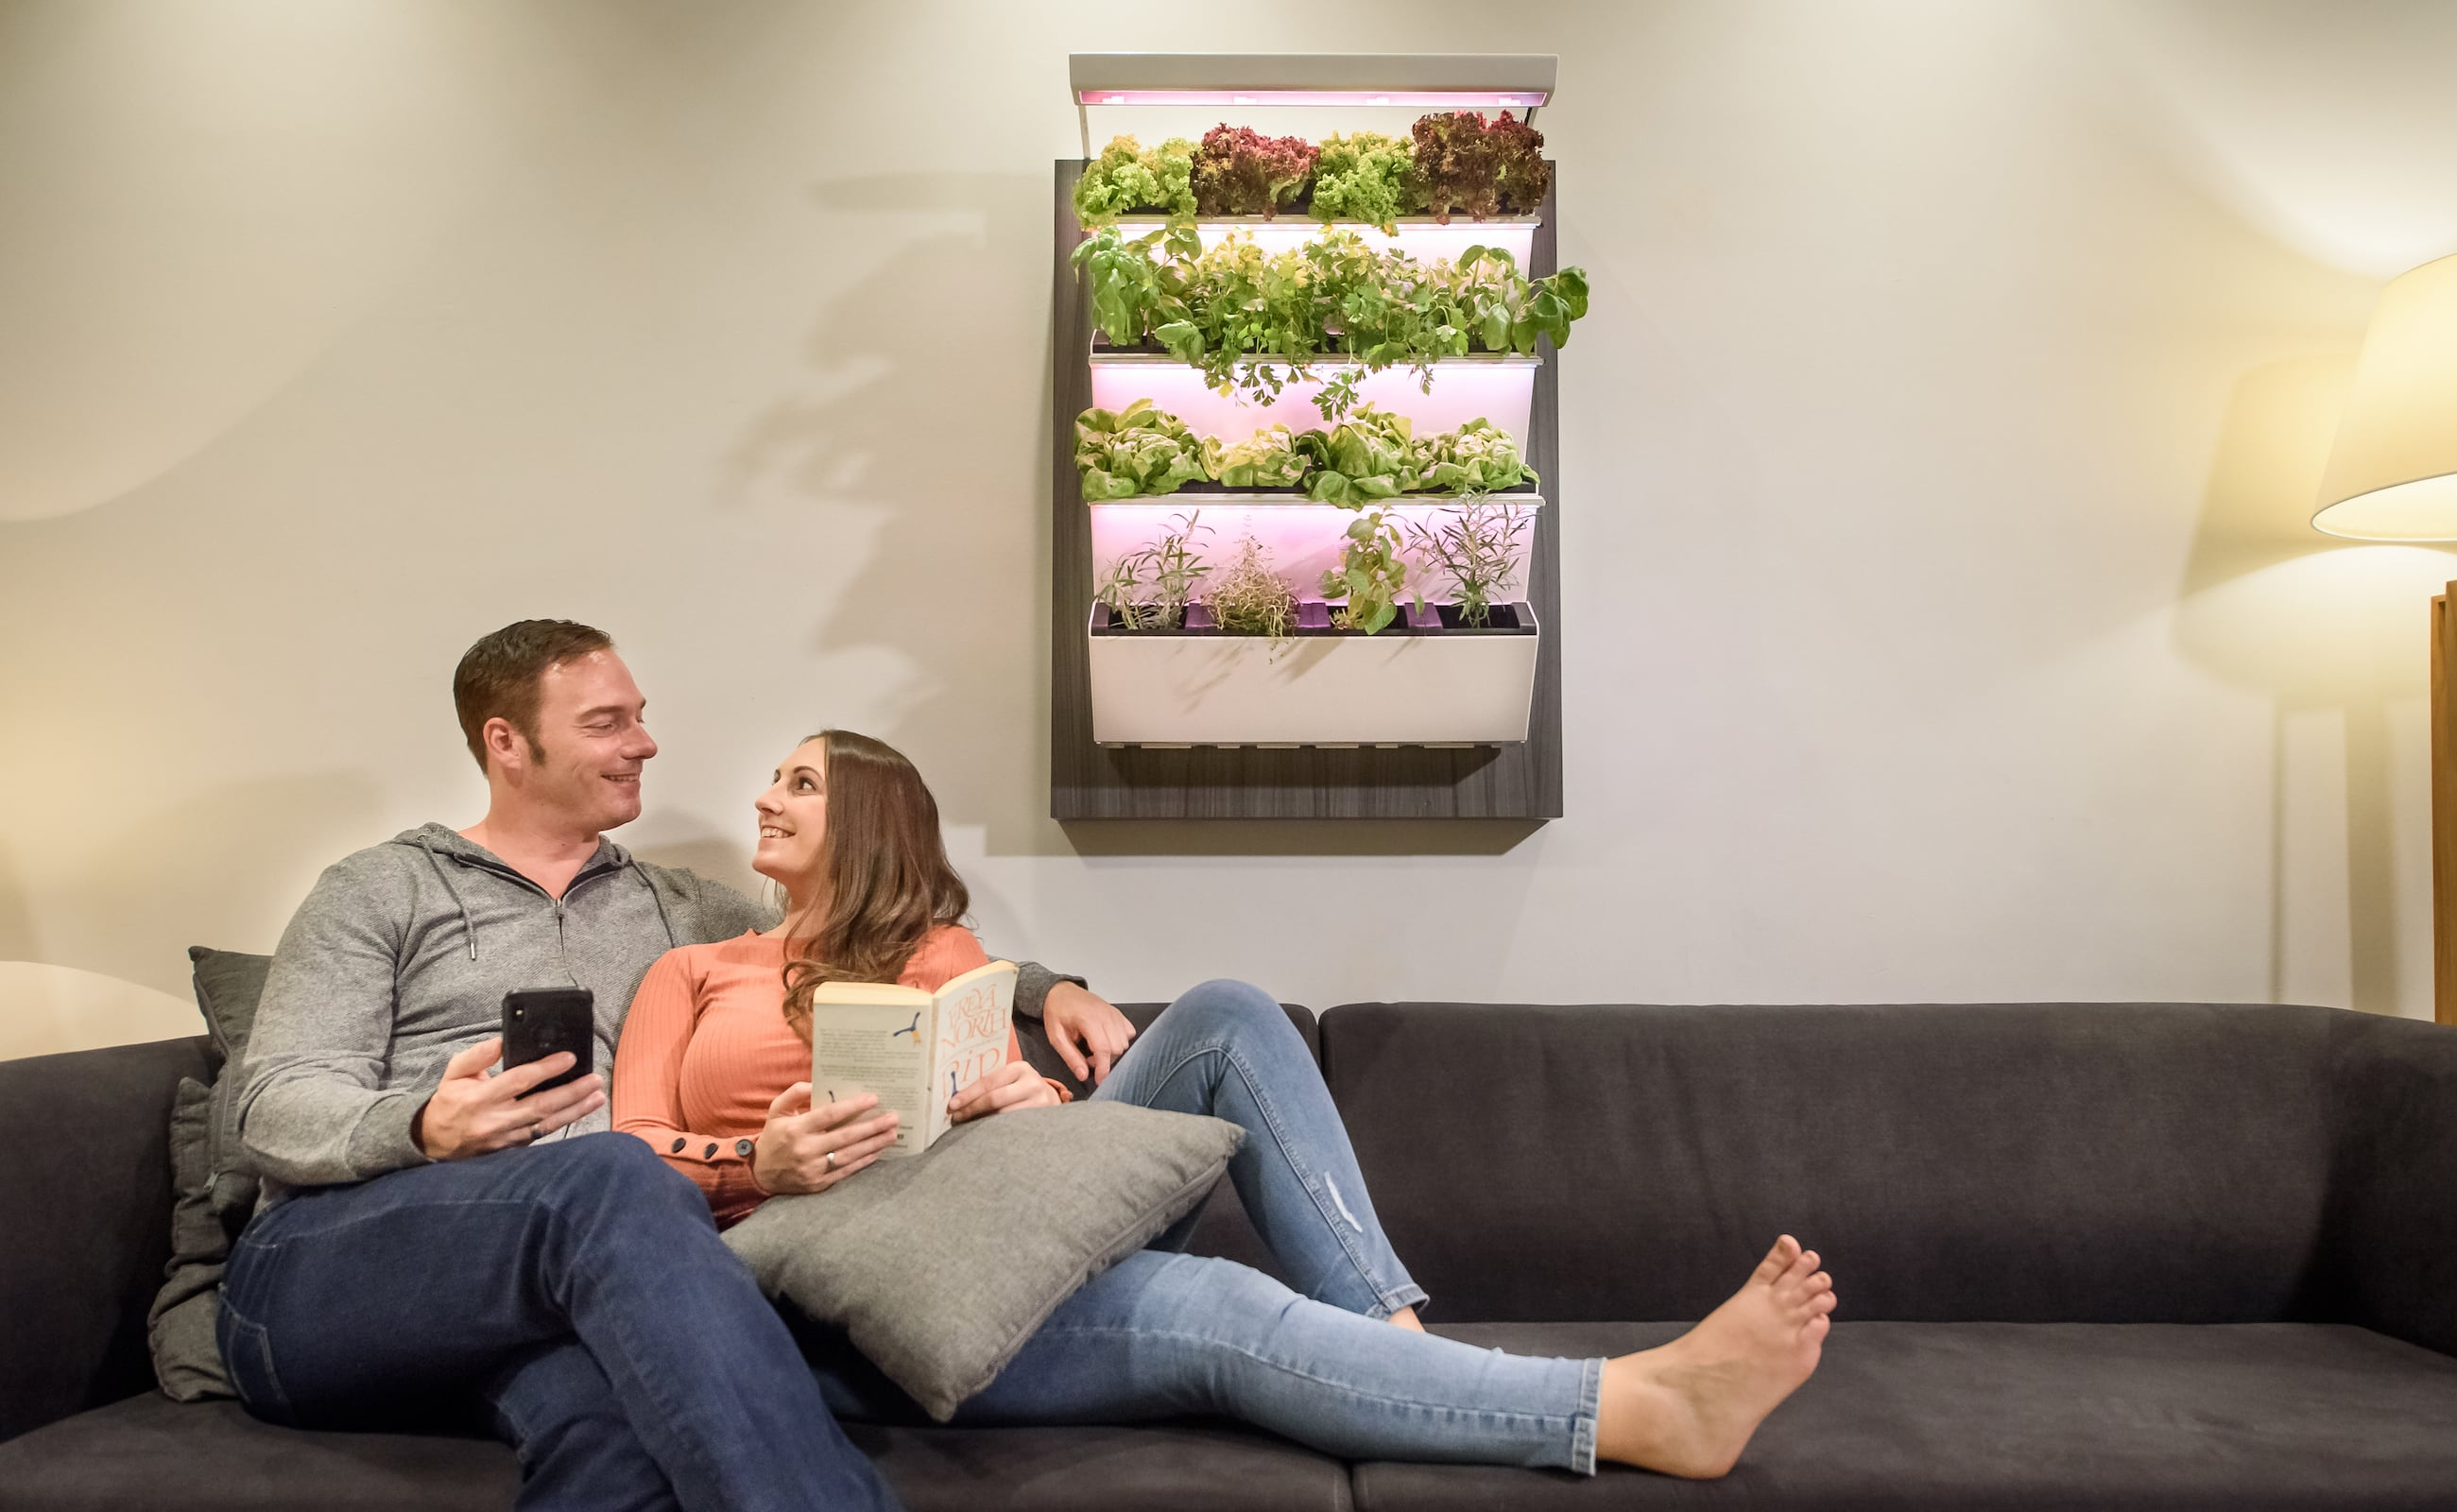 Herbitat Smart Hydroponic Indoor Garden lets you grow your own produce easily at home